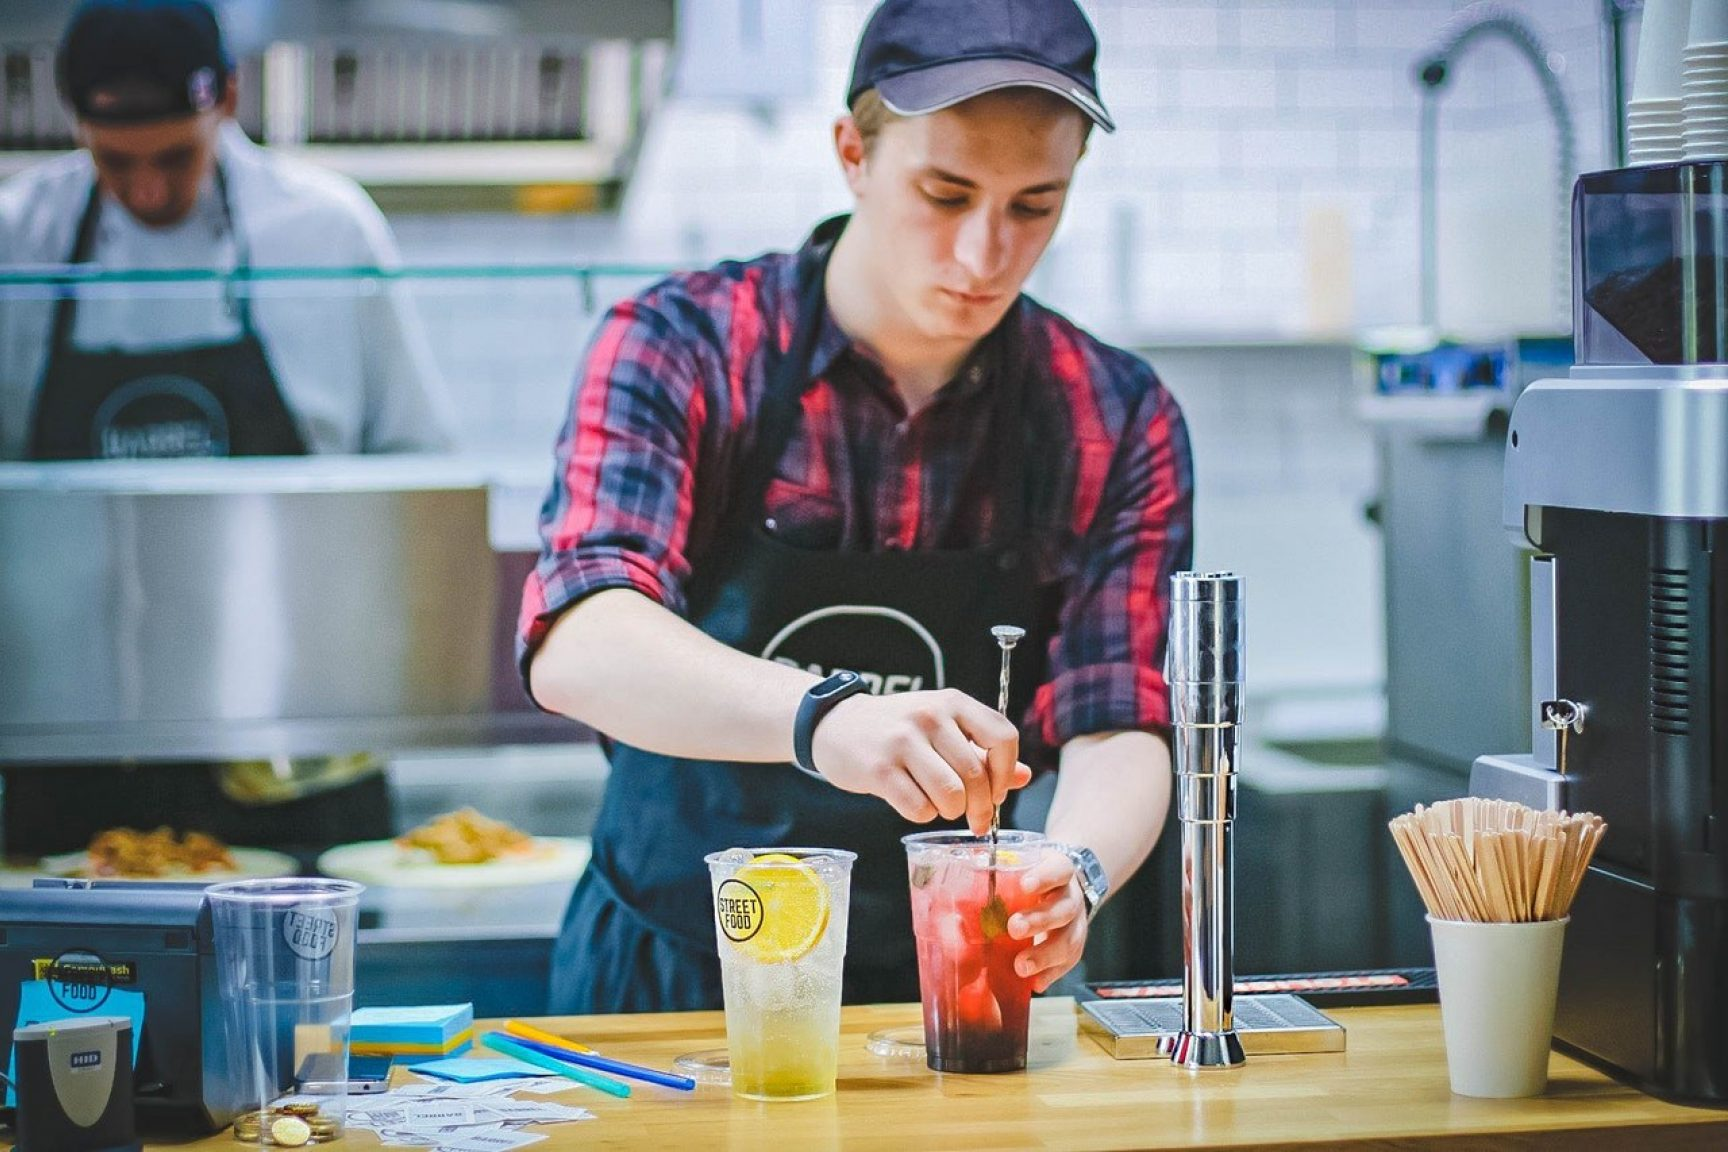 A person mixing drinks behind a counter. He is wearing a cap and an apron.